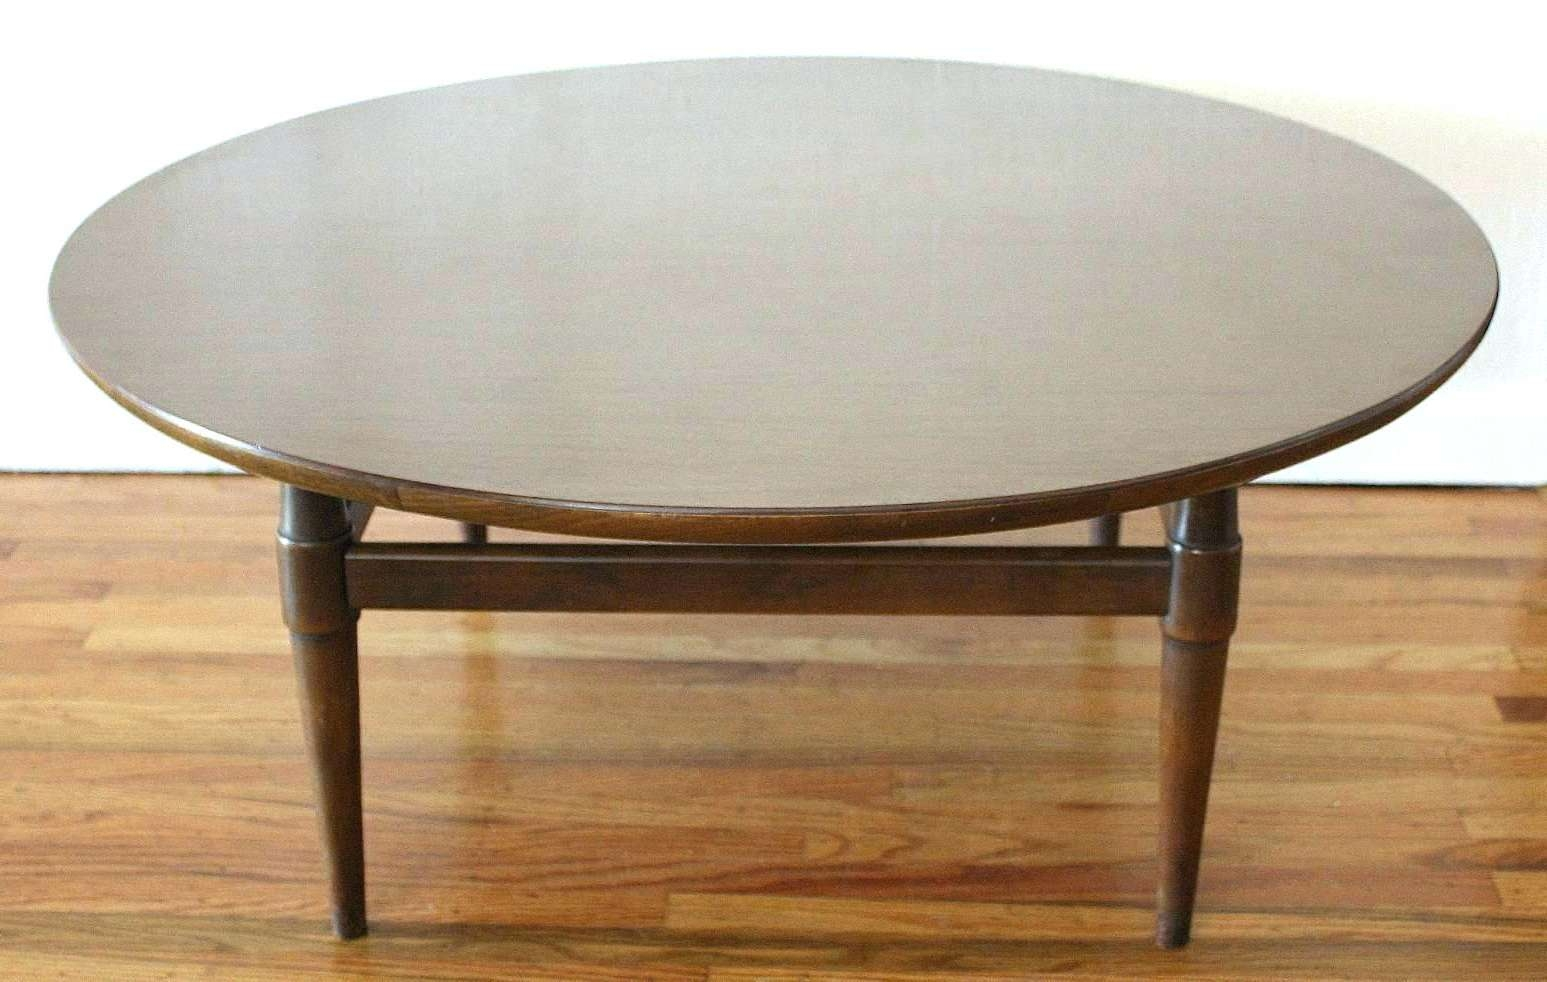 Widely Used Coffee Tables With Rounded Corners In Coffee Table : Rounded Corner Coffee Table With Corners Living (View 19 of 20)